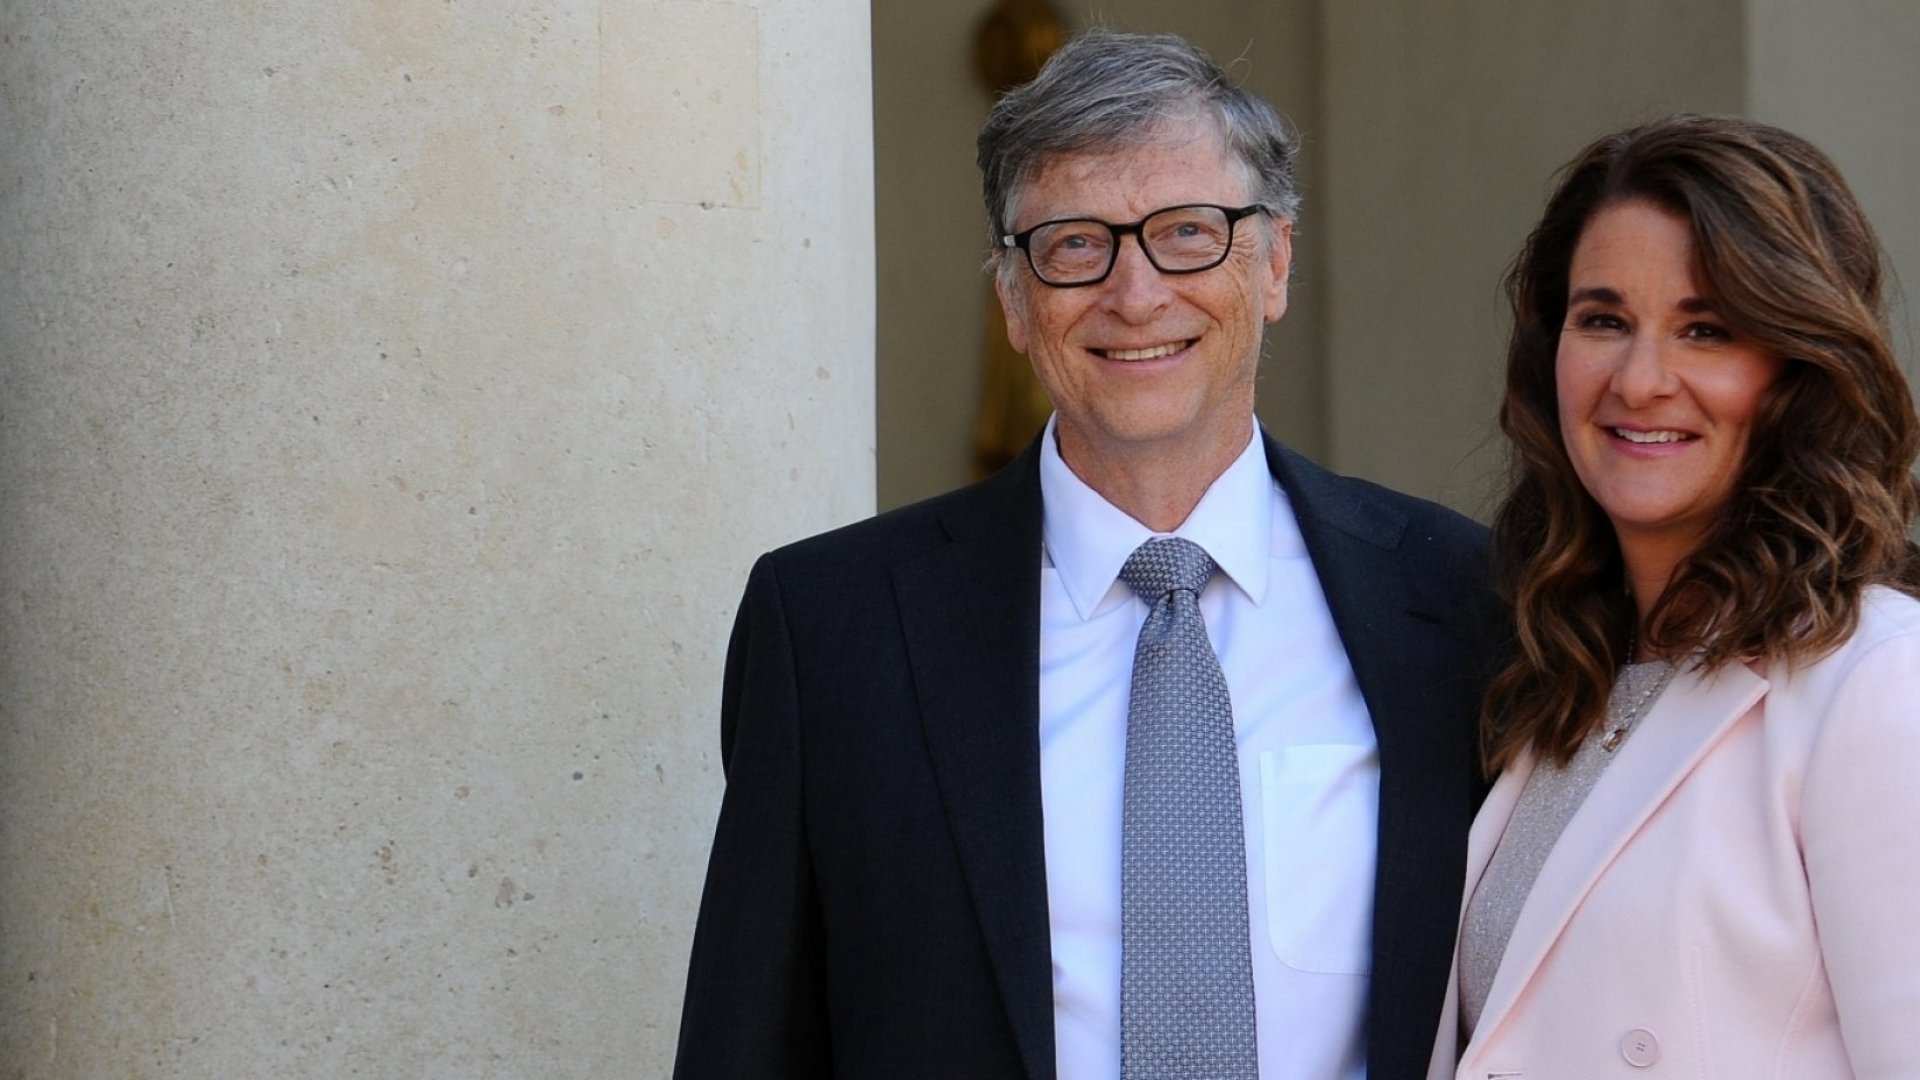 Bill and Melinda Gates pose in front of the Elysee Palace before receiving the award of Commander of the Legion of Honor by French President Francois Hollande on April 21, 2017 in Paris, France.